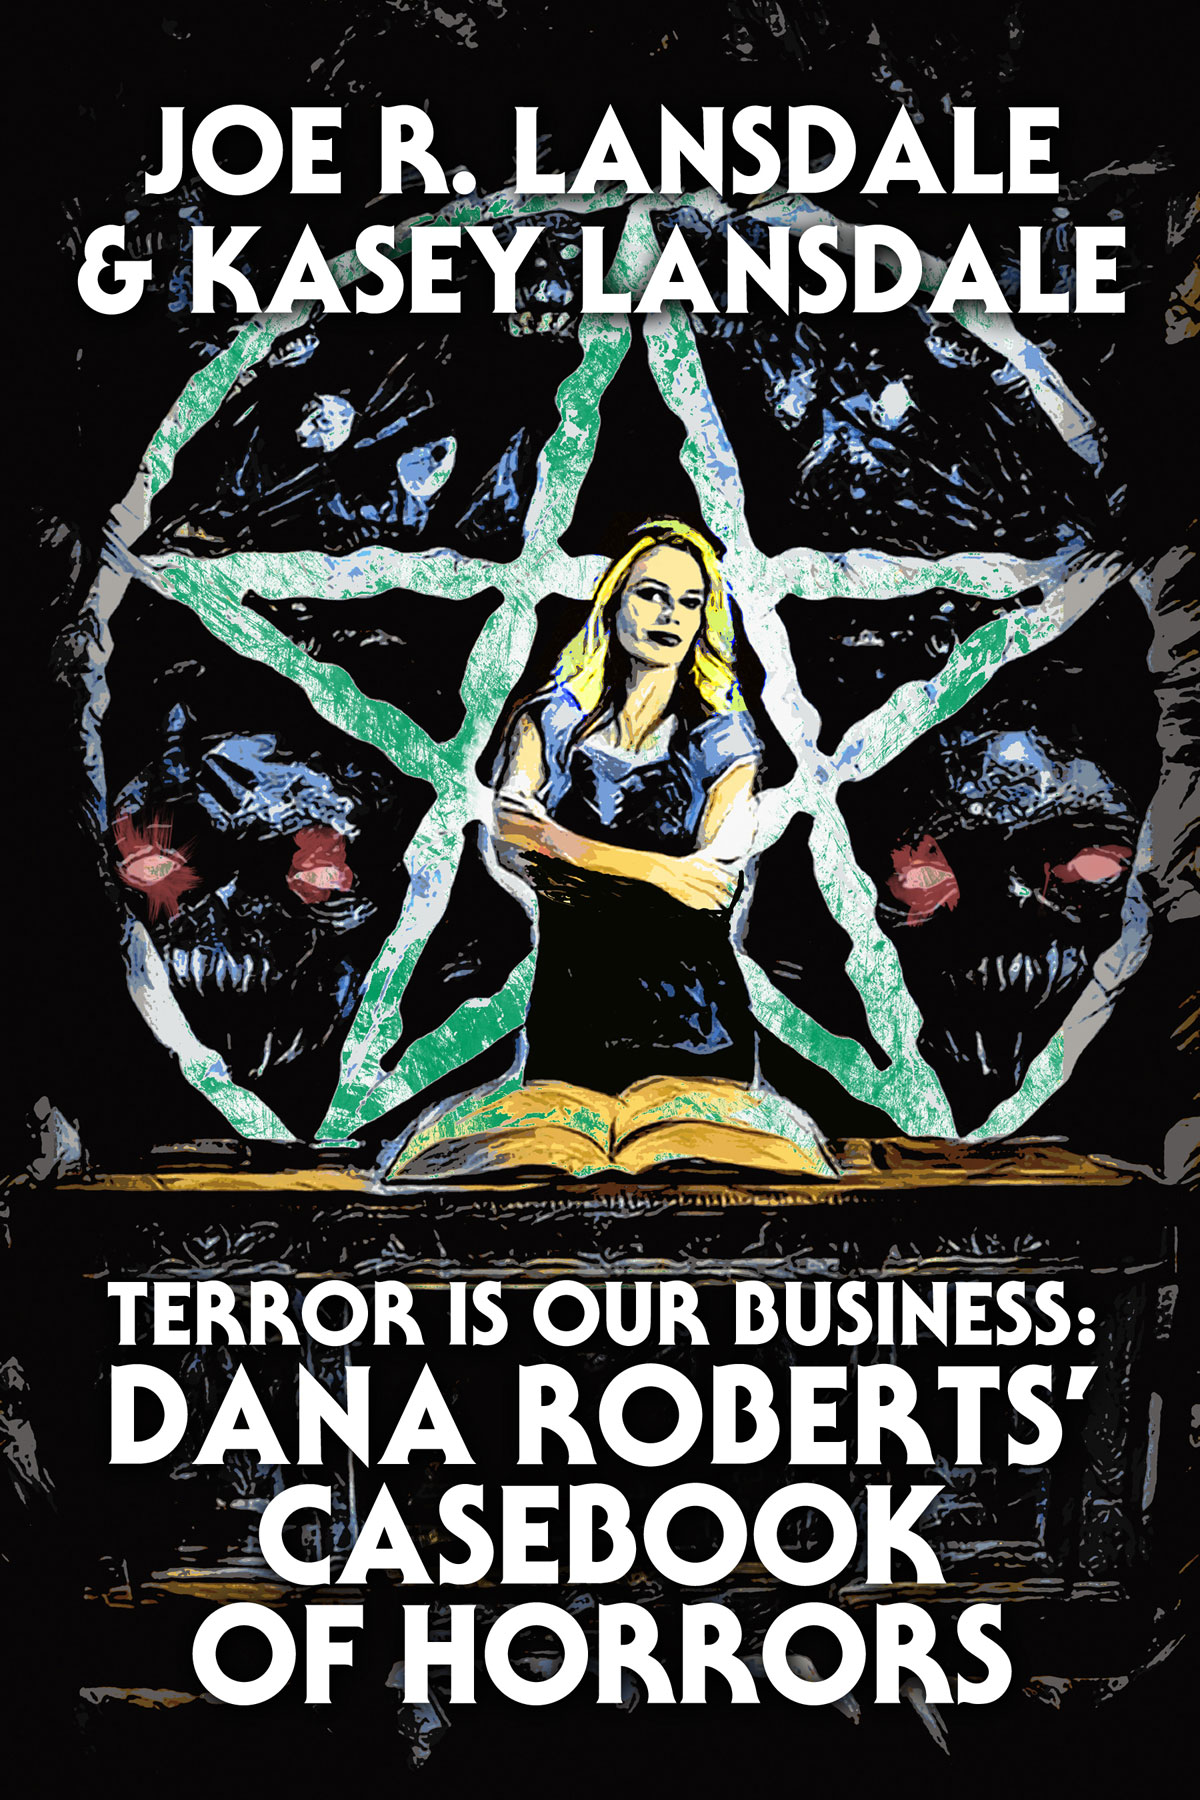 terror is our business - Exclusive Cover Reveal - Joe and Kasey Lansdale's Terror Is Our Business: Dana Roberts' Casebook of Horrors